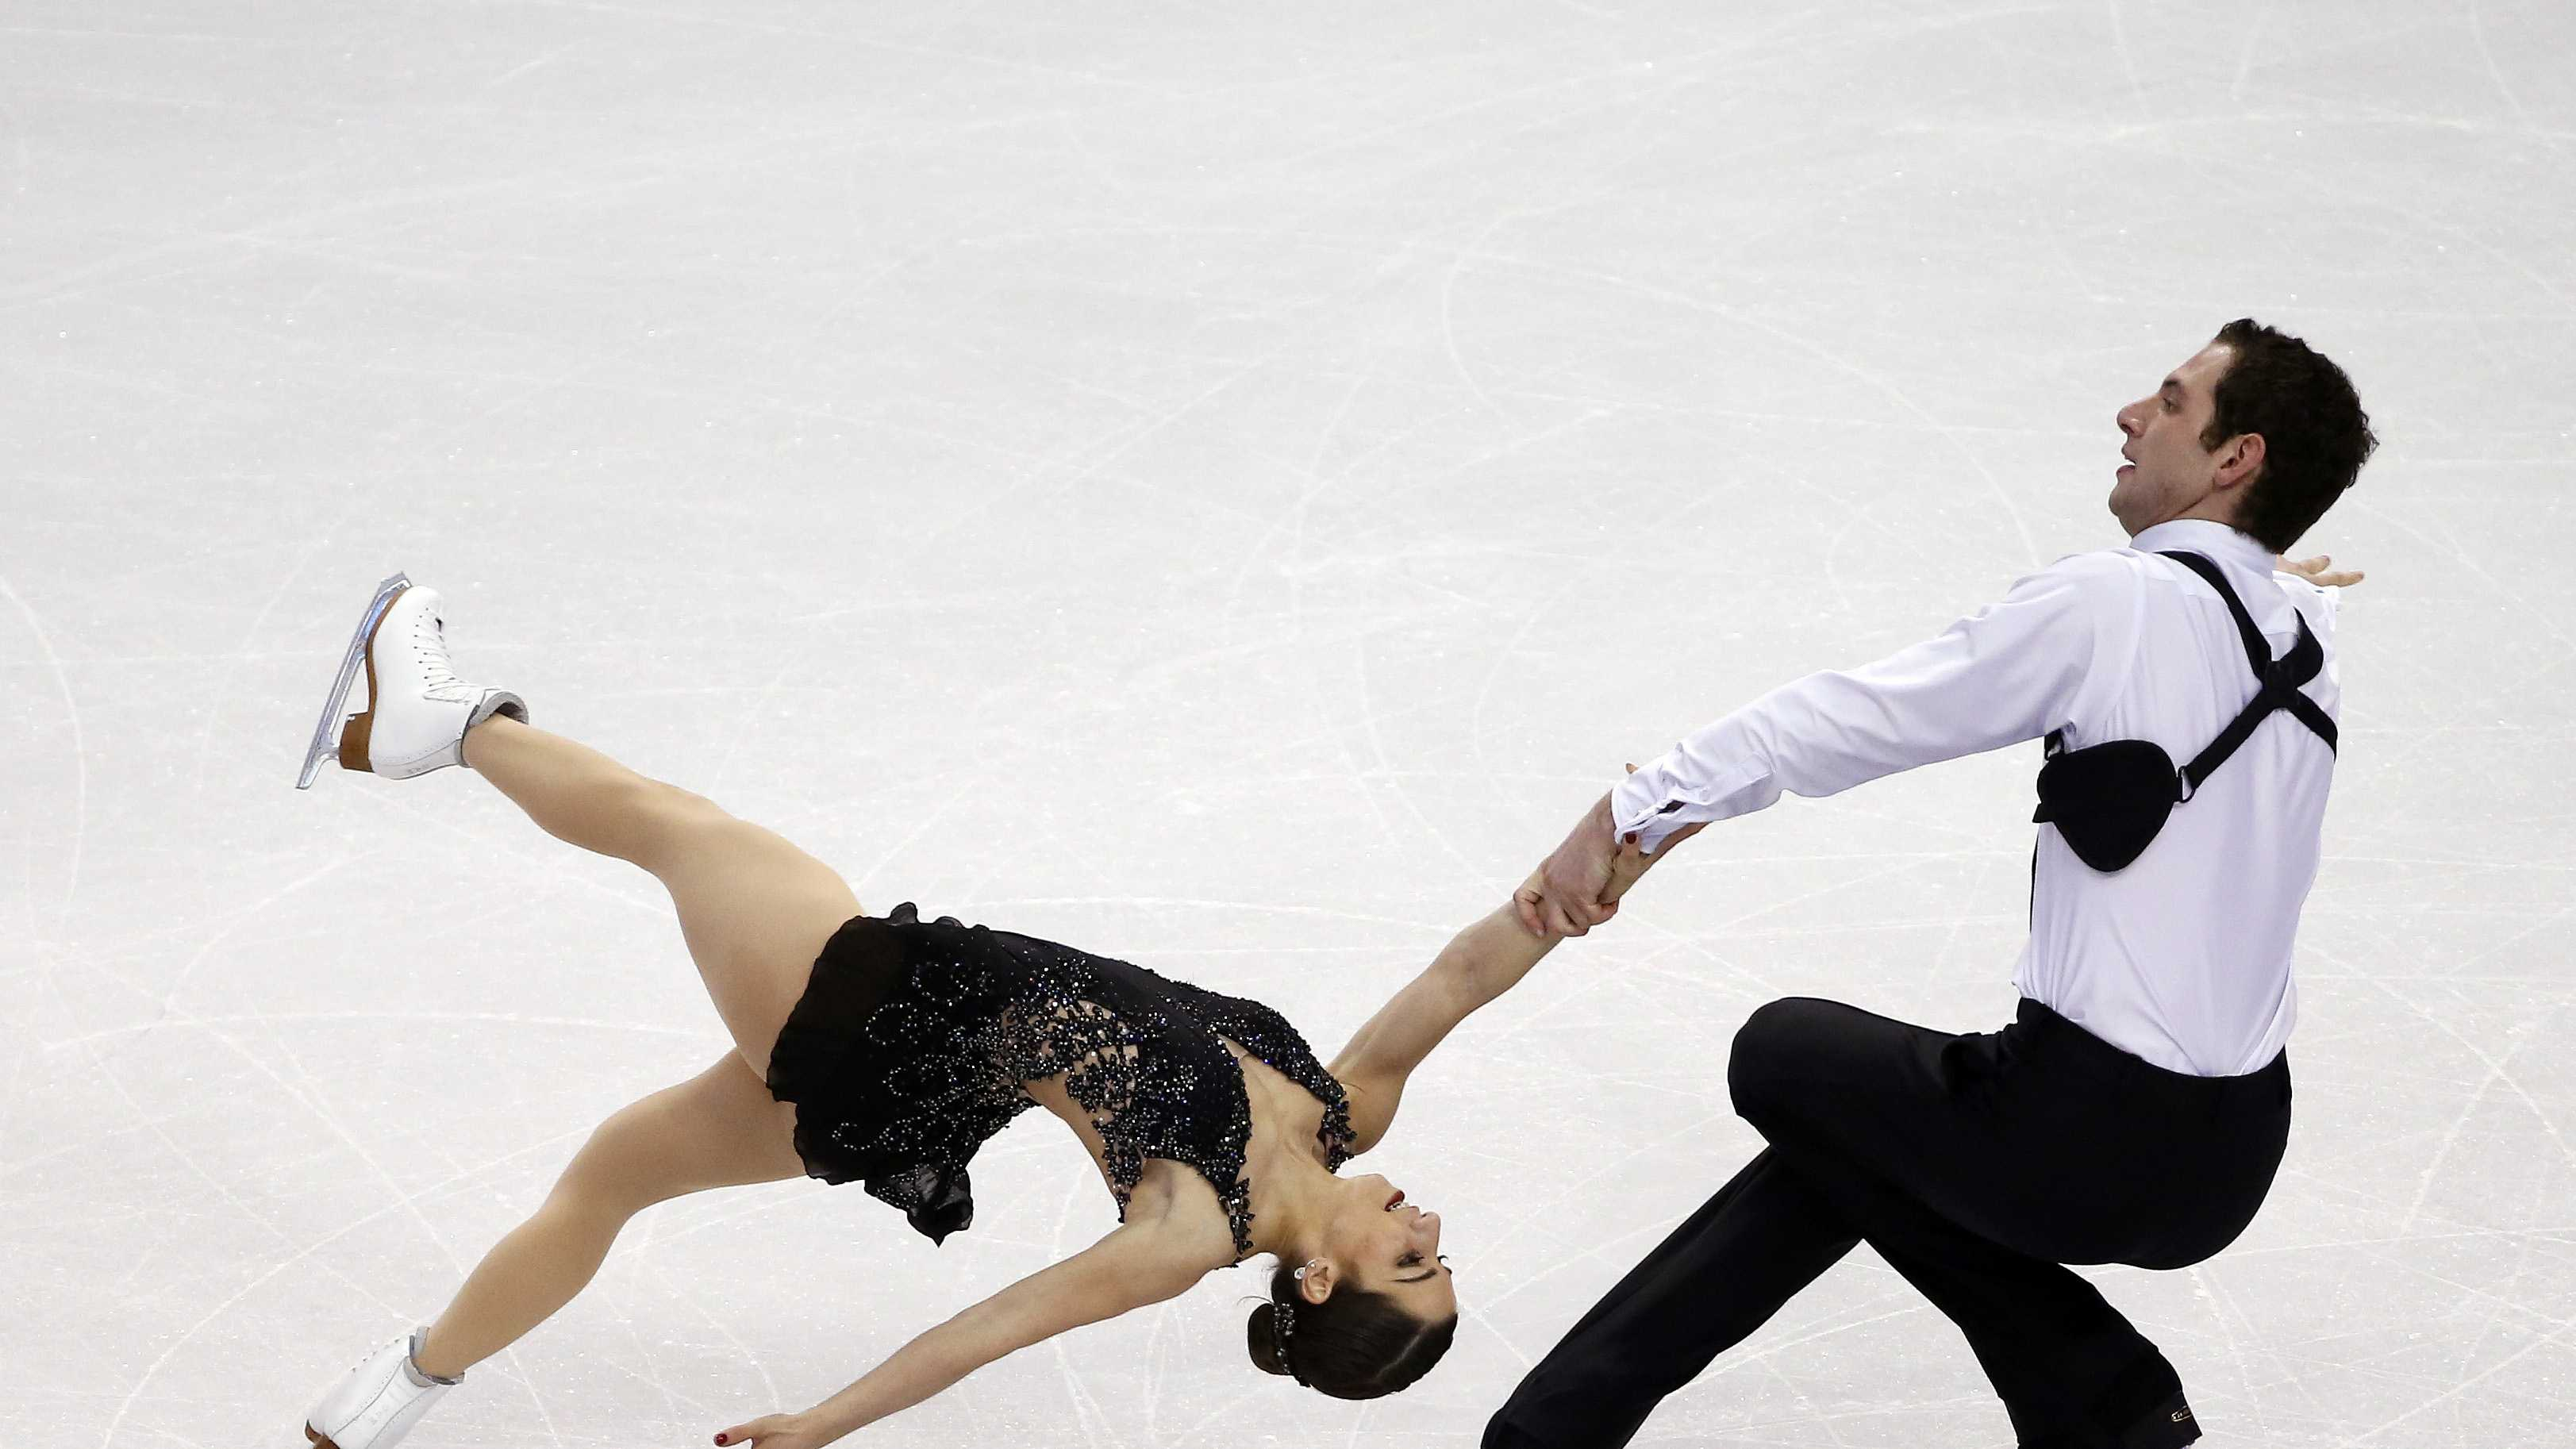 Marissa Castelli and Simon Shnapir compete during the pairs free skate at the U.S. Figure Skating Championships in Boston, Saturday, Jan. 11, 2014.